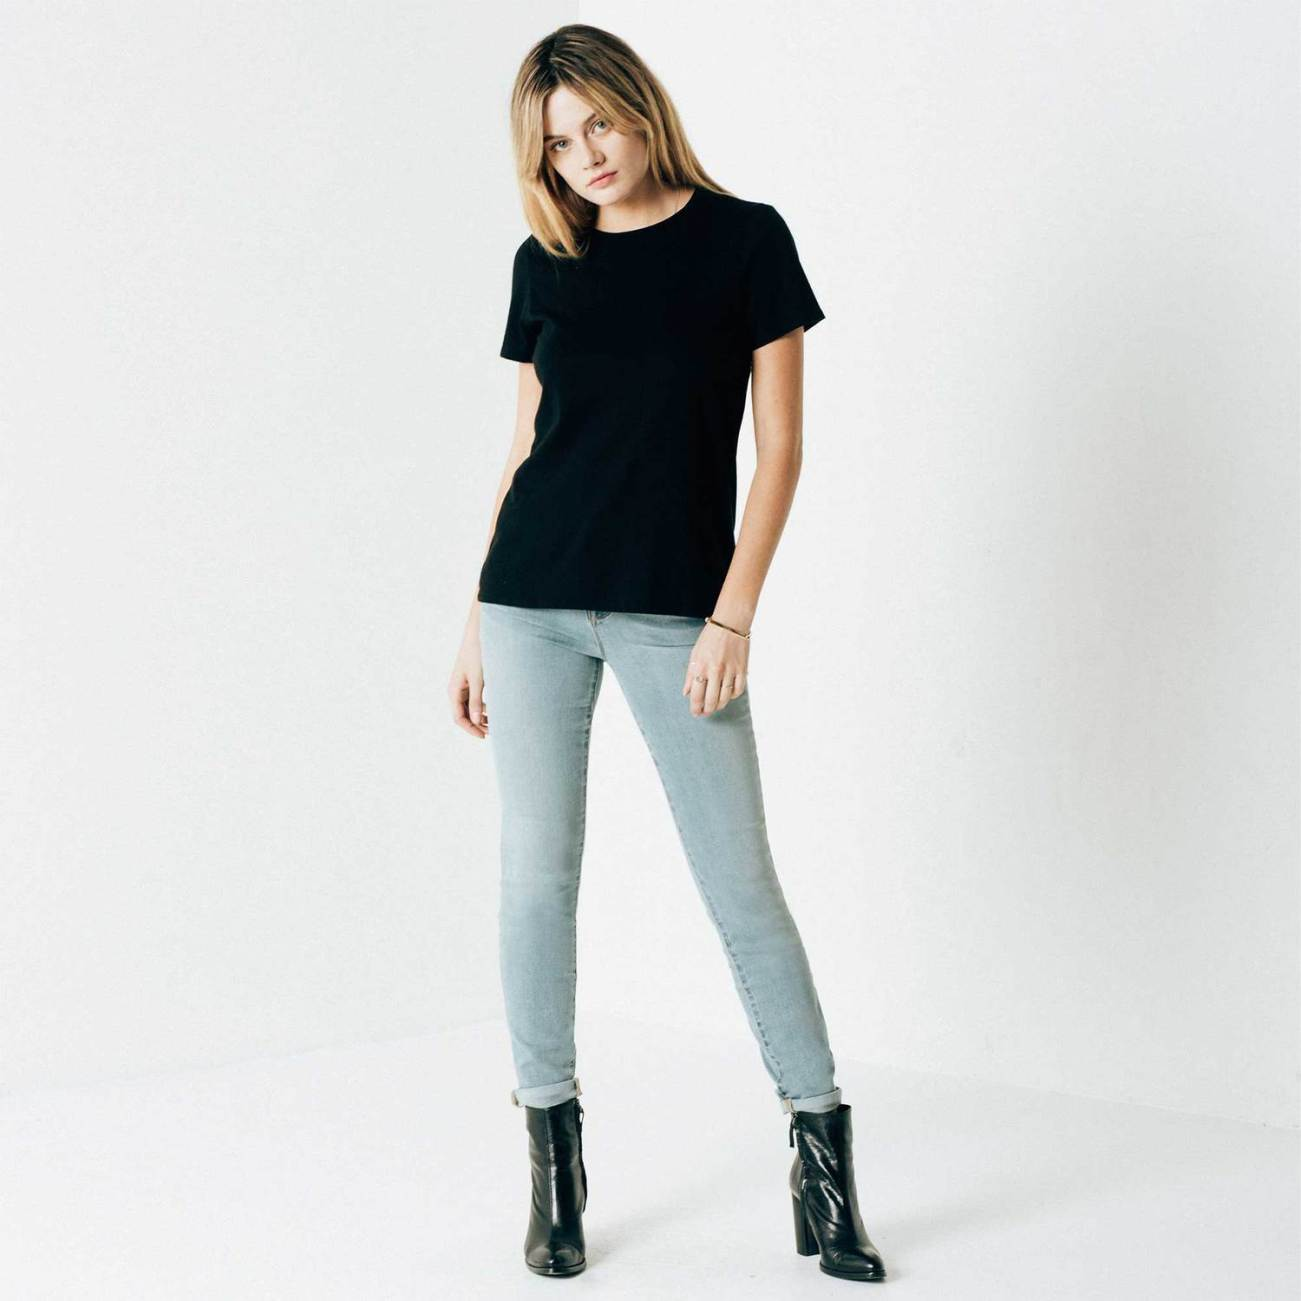 DSTLD Women's Mid Rise Skinny Jean in Light Vintage, $85, Photo Cred: DSTLD